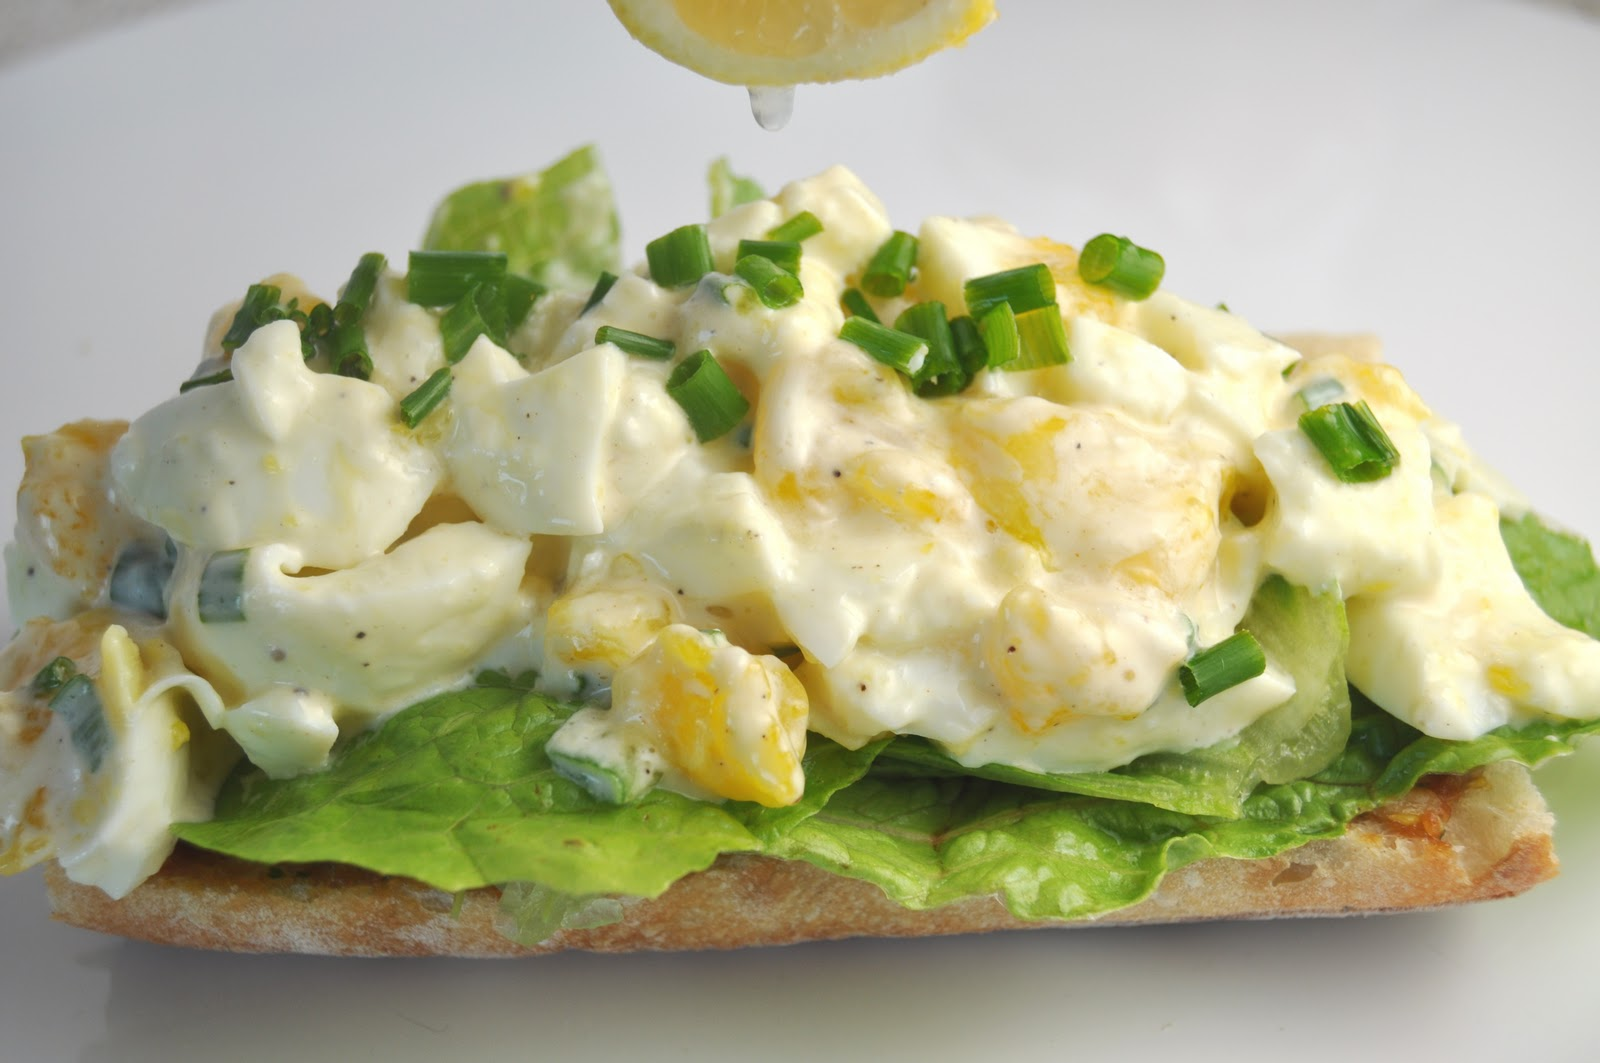 Food Network Egg Sandwich